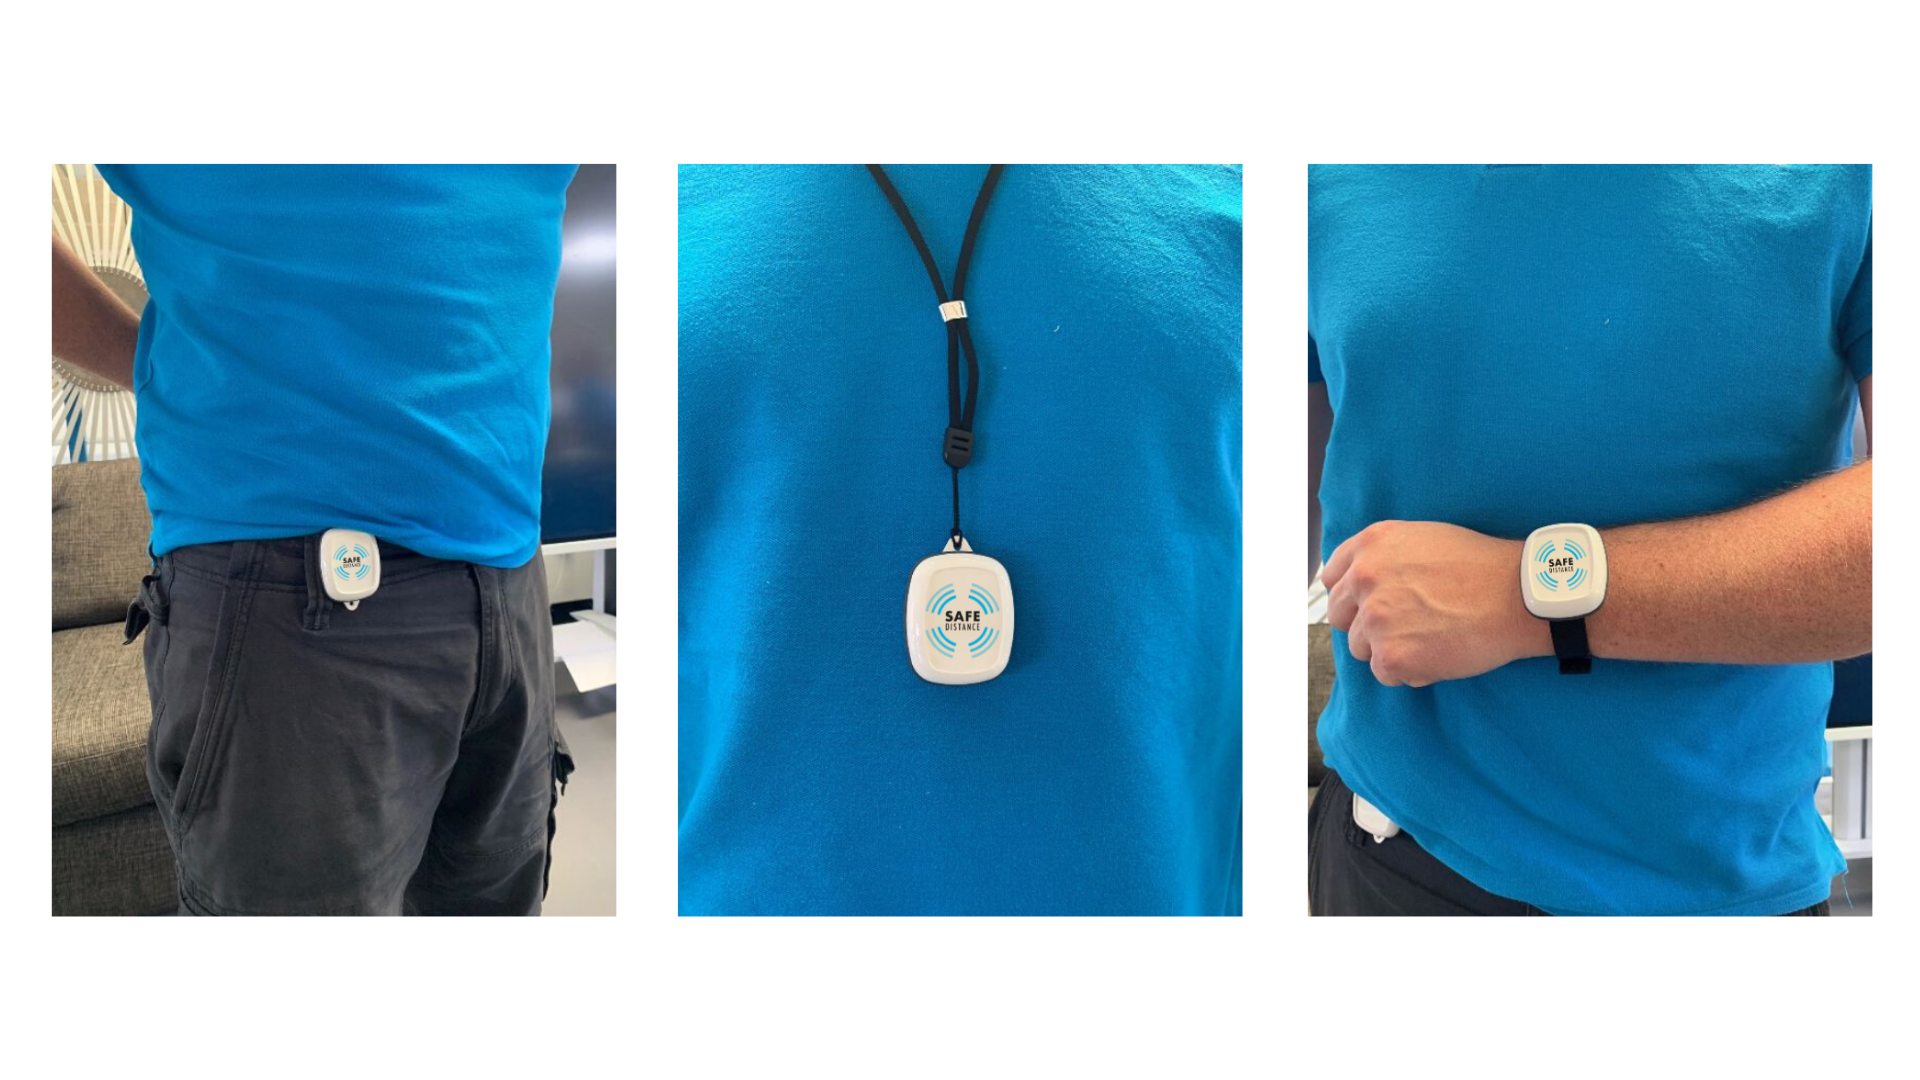 Safe Distance social distance monitor wearables - belt clip, lanyard and wristband